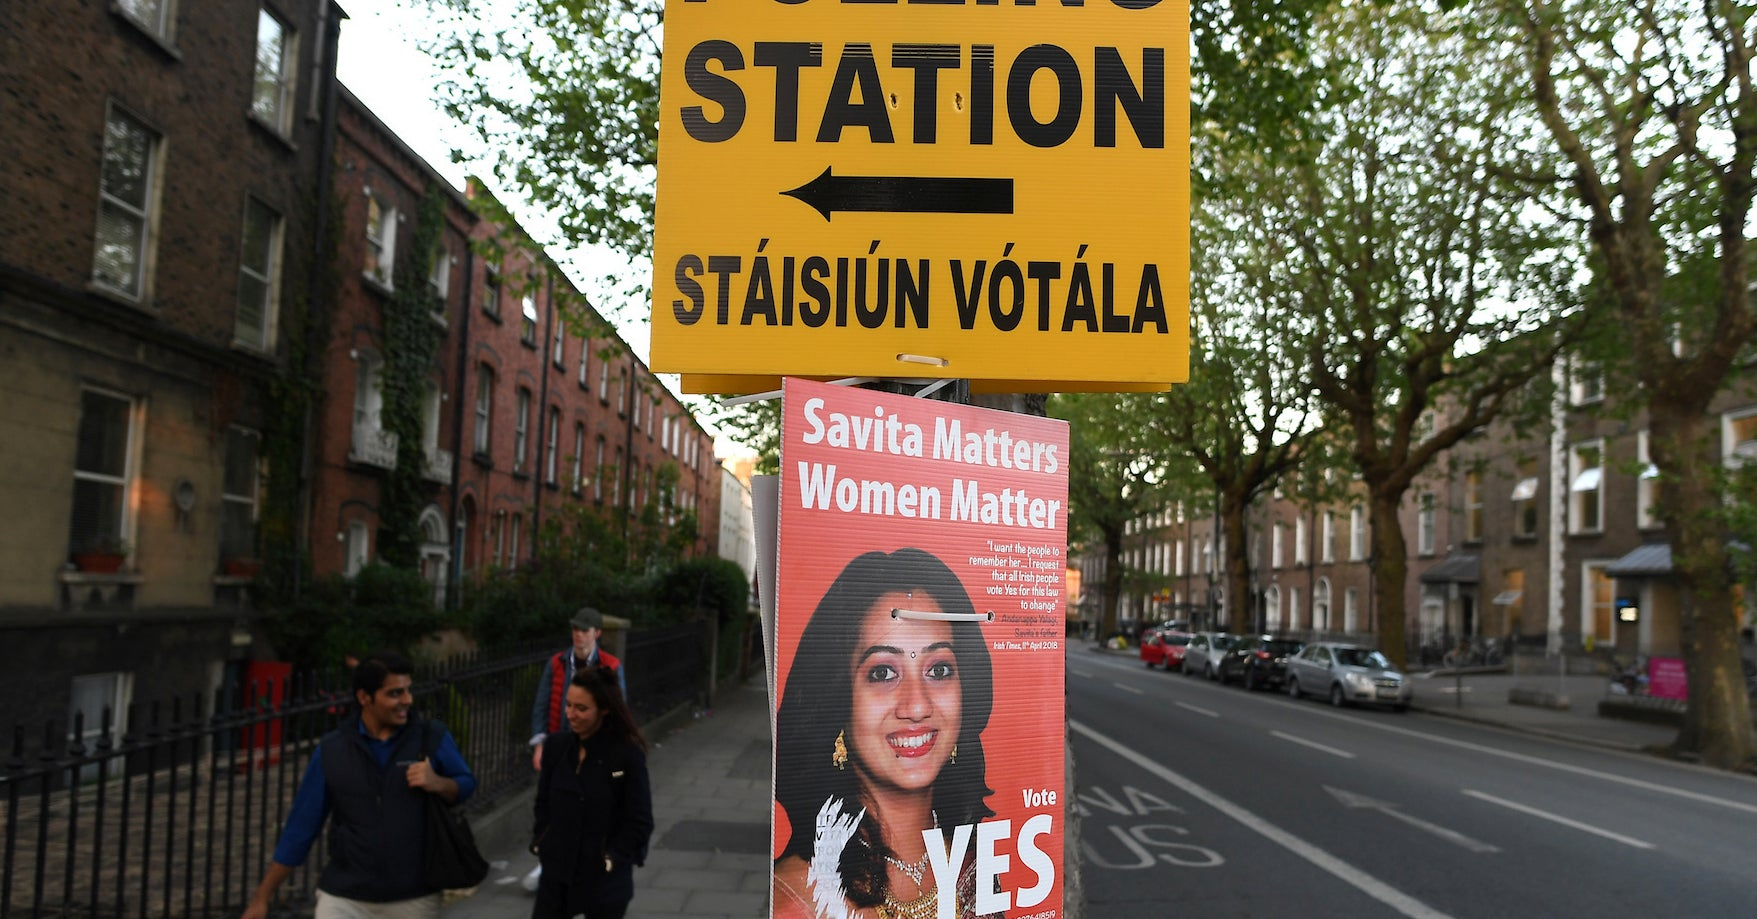 People Are Flooding Home To Ireland To Vote In The Abortion Referendum